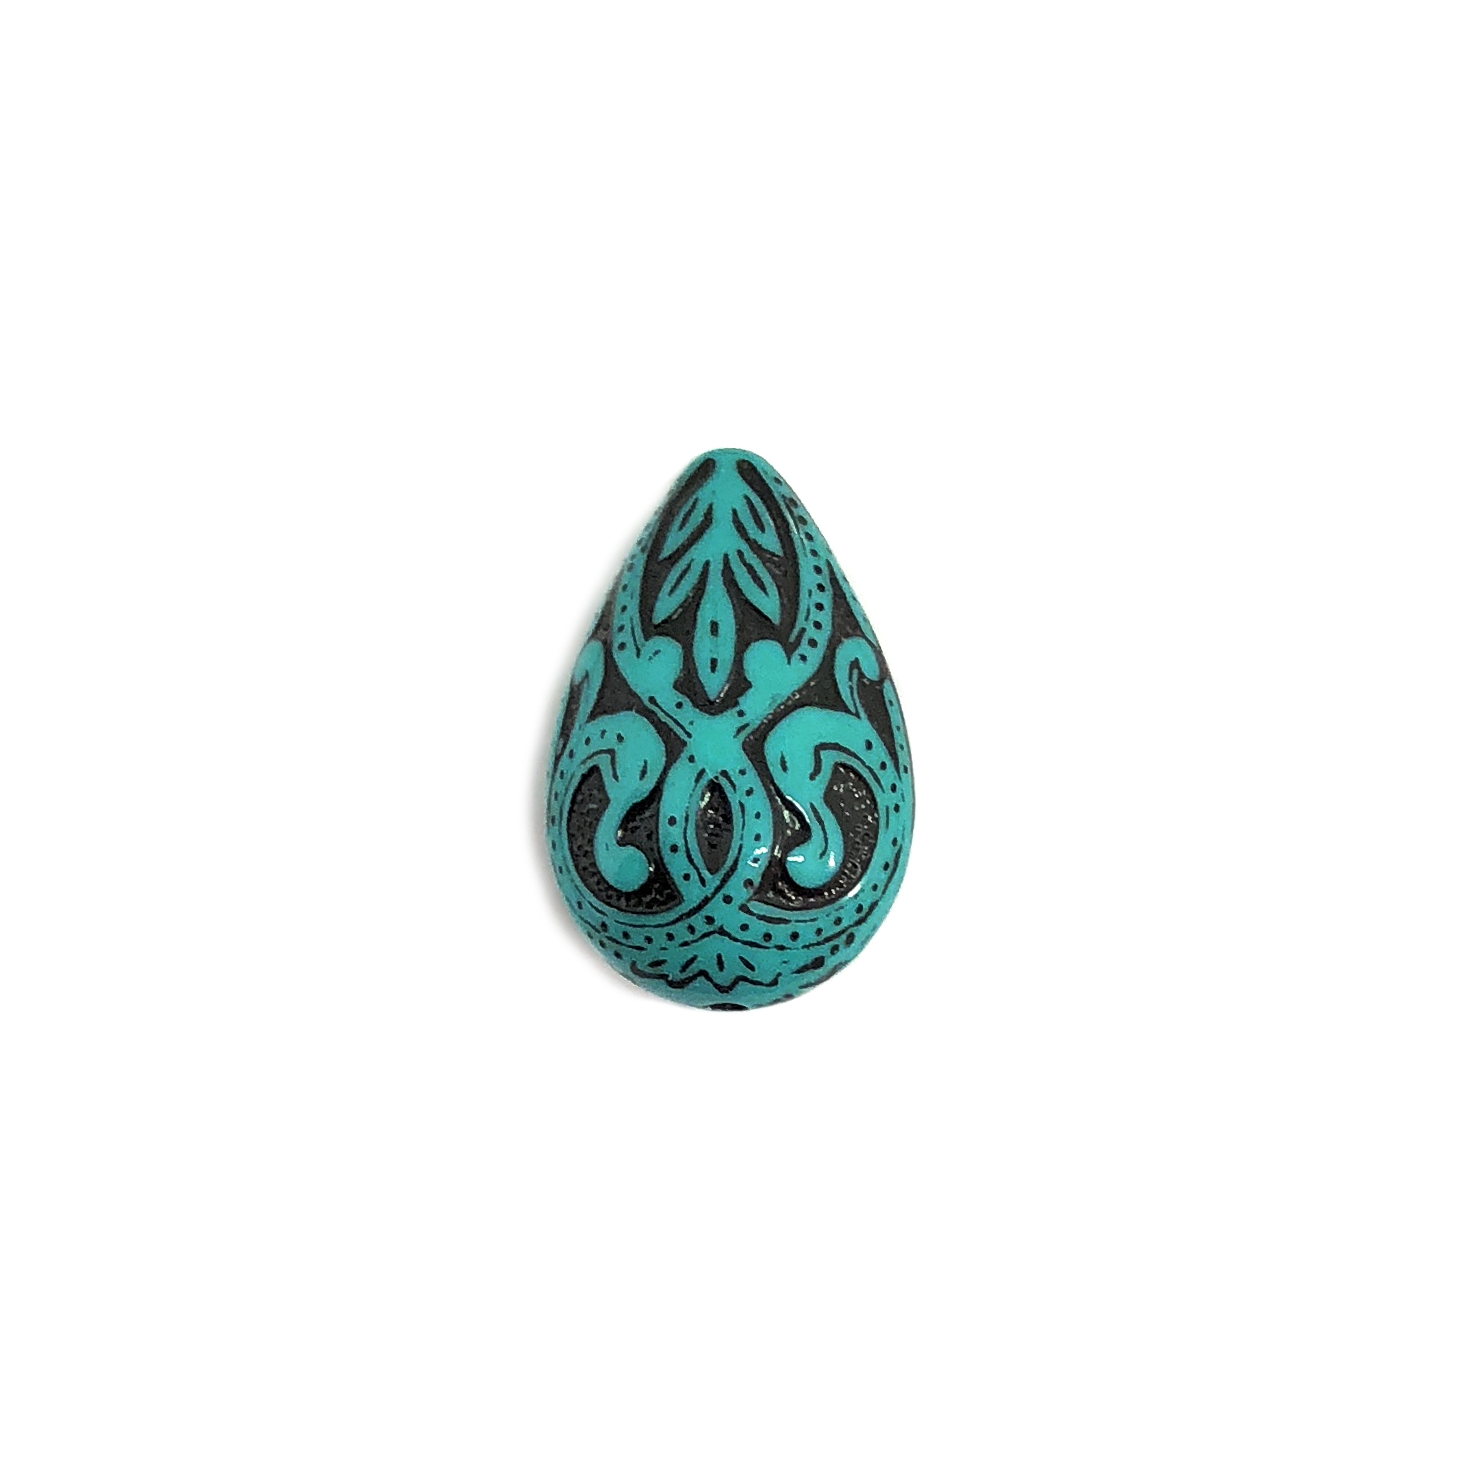 dark turquoise, acrylic beads, victorian beads, dark turquoise, 19x13mm, teardrop, teardrop bead, turquoise, jet black, beads, teardrop, jewelry making, acrylic, teardrop design, accents, US made, B'sue Boutiques, jewelry findings, vintage supplies, 07817